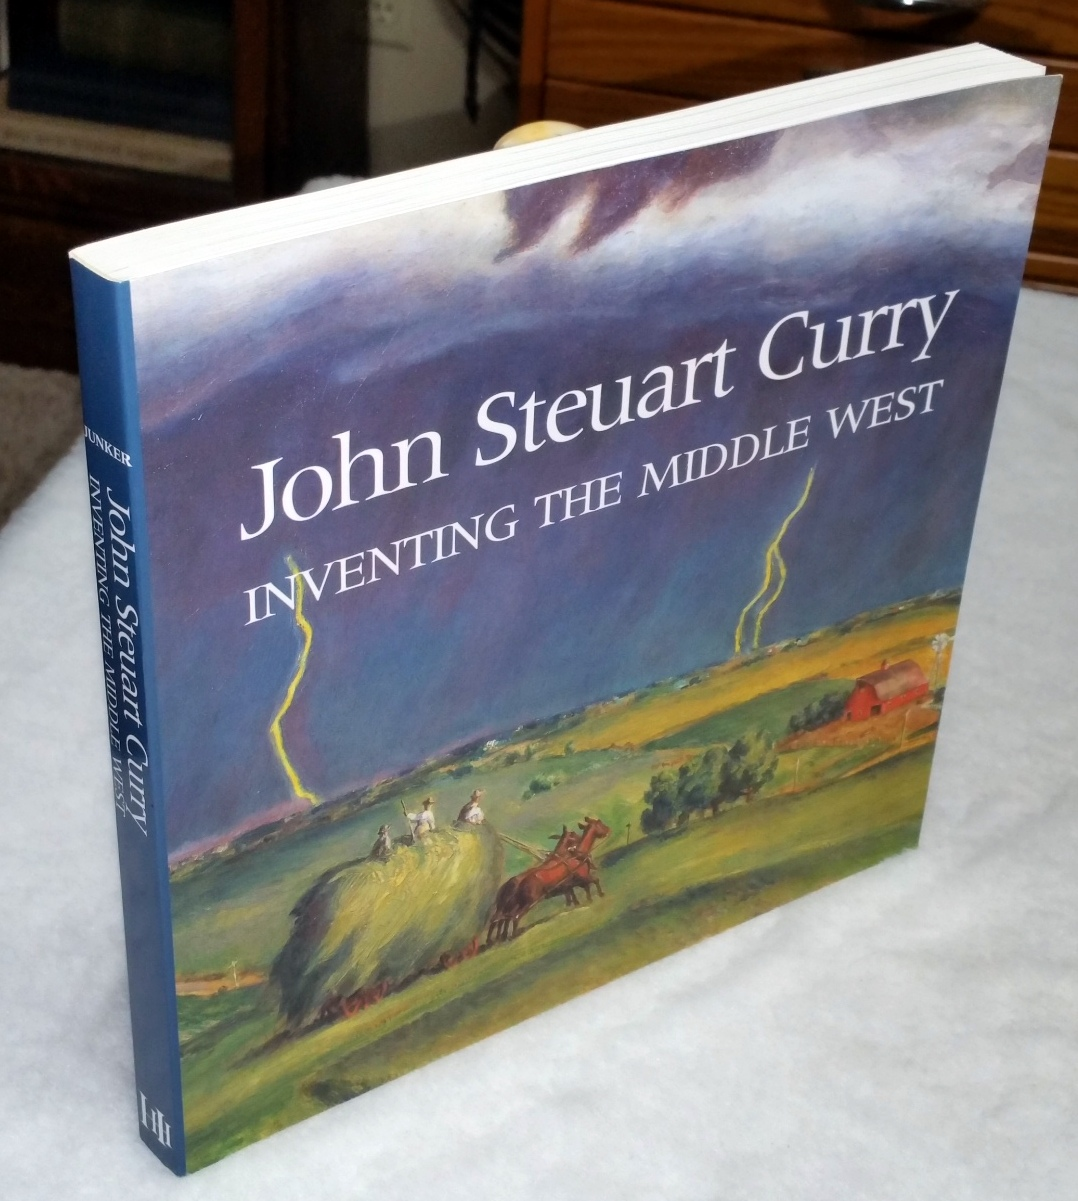 Image for John Steuart Curry:  Inventing the Middle West